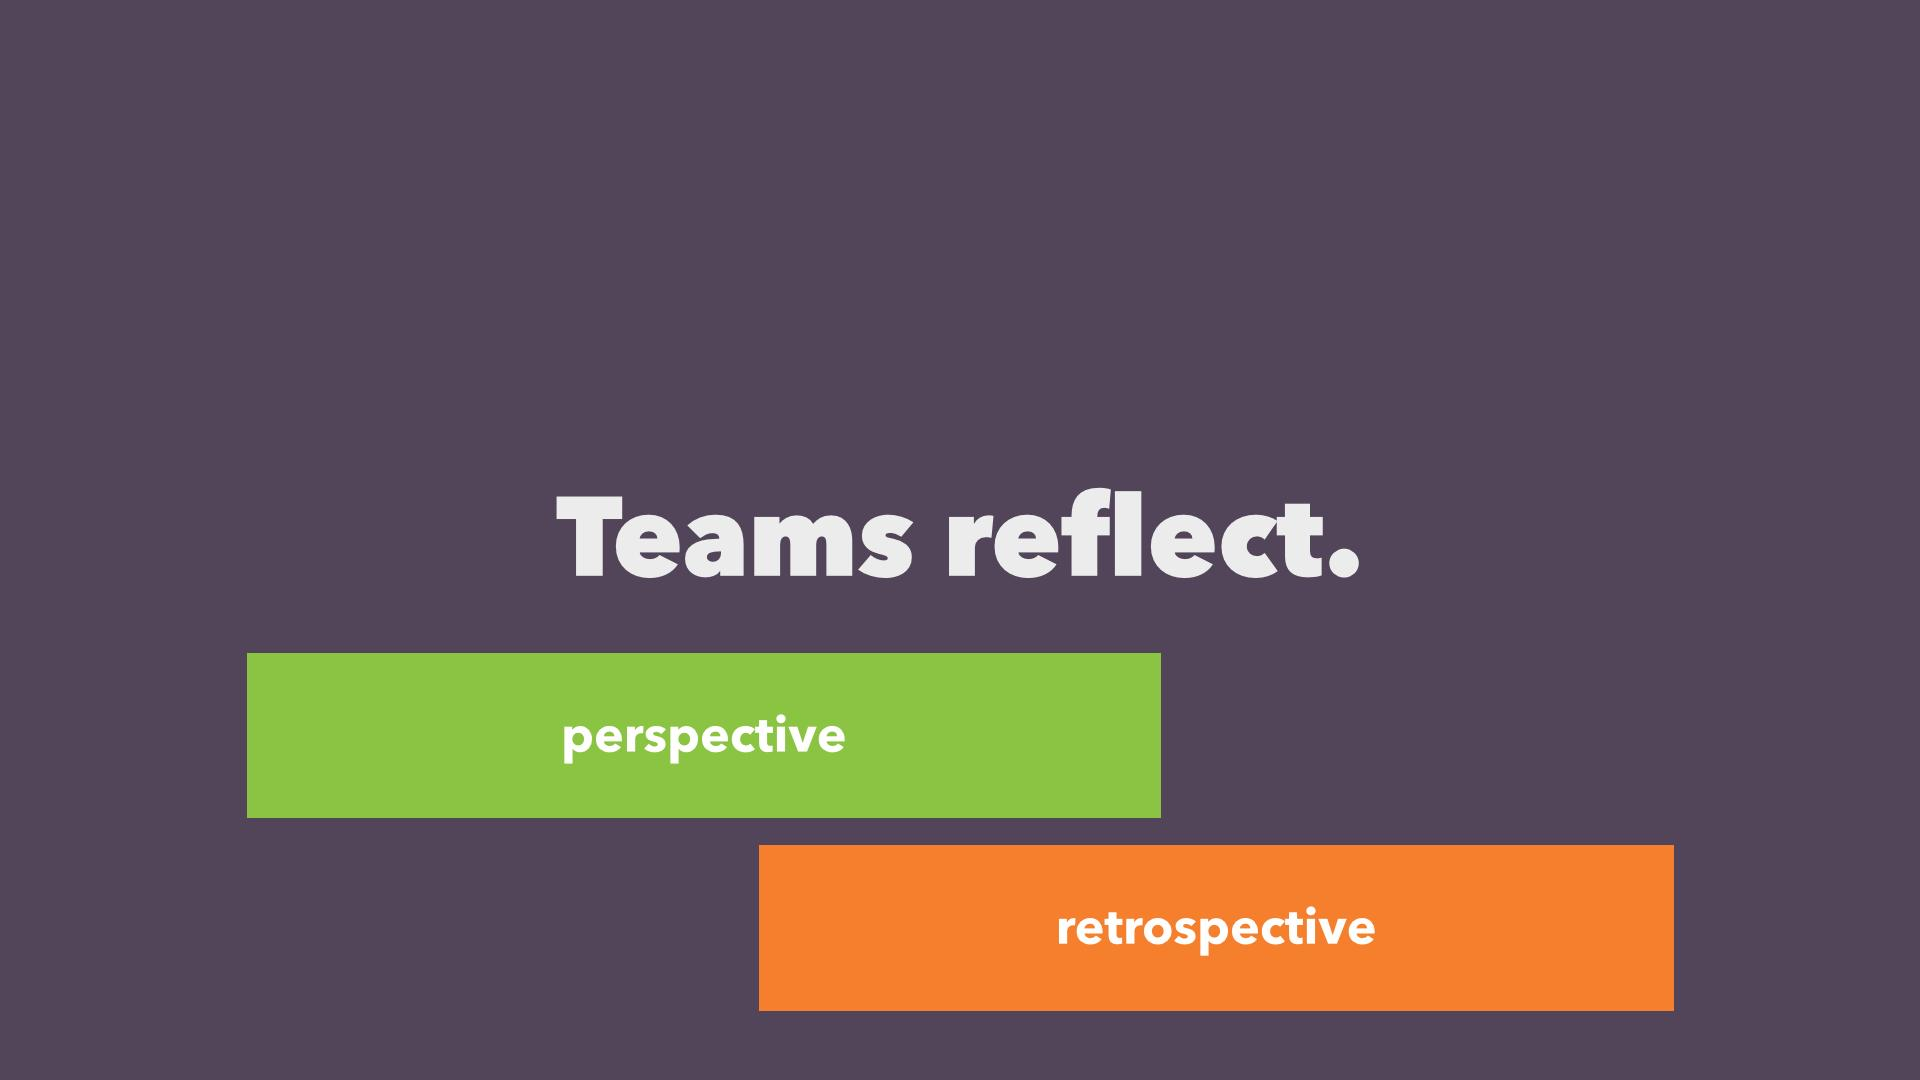 Teams reflect, perspective, retrospective